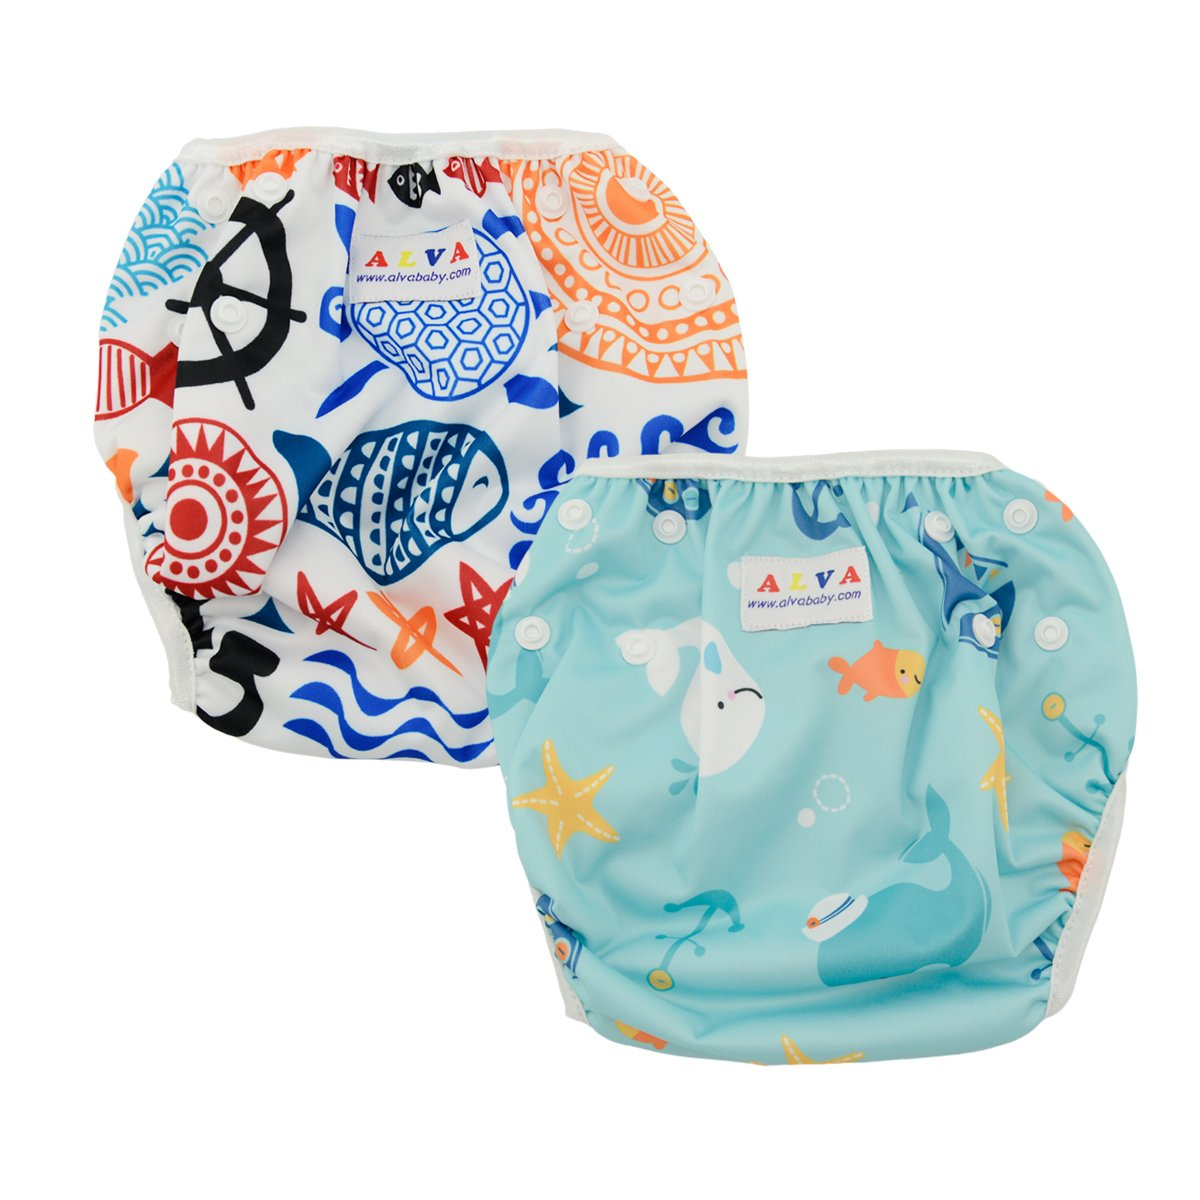 Alva Baby Lovely Swim Nappies Reuseable Adjustable Swimming Pants 2Pack DYK05-06-EU Alvababy